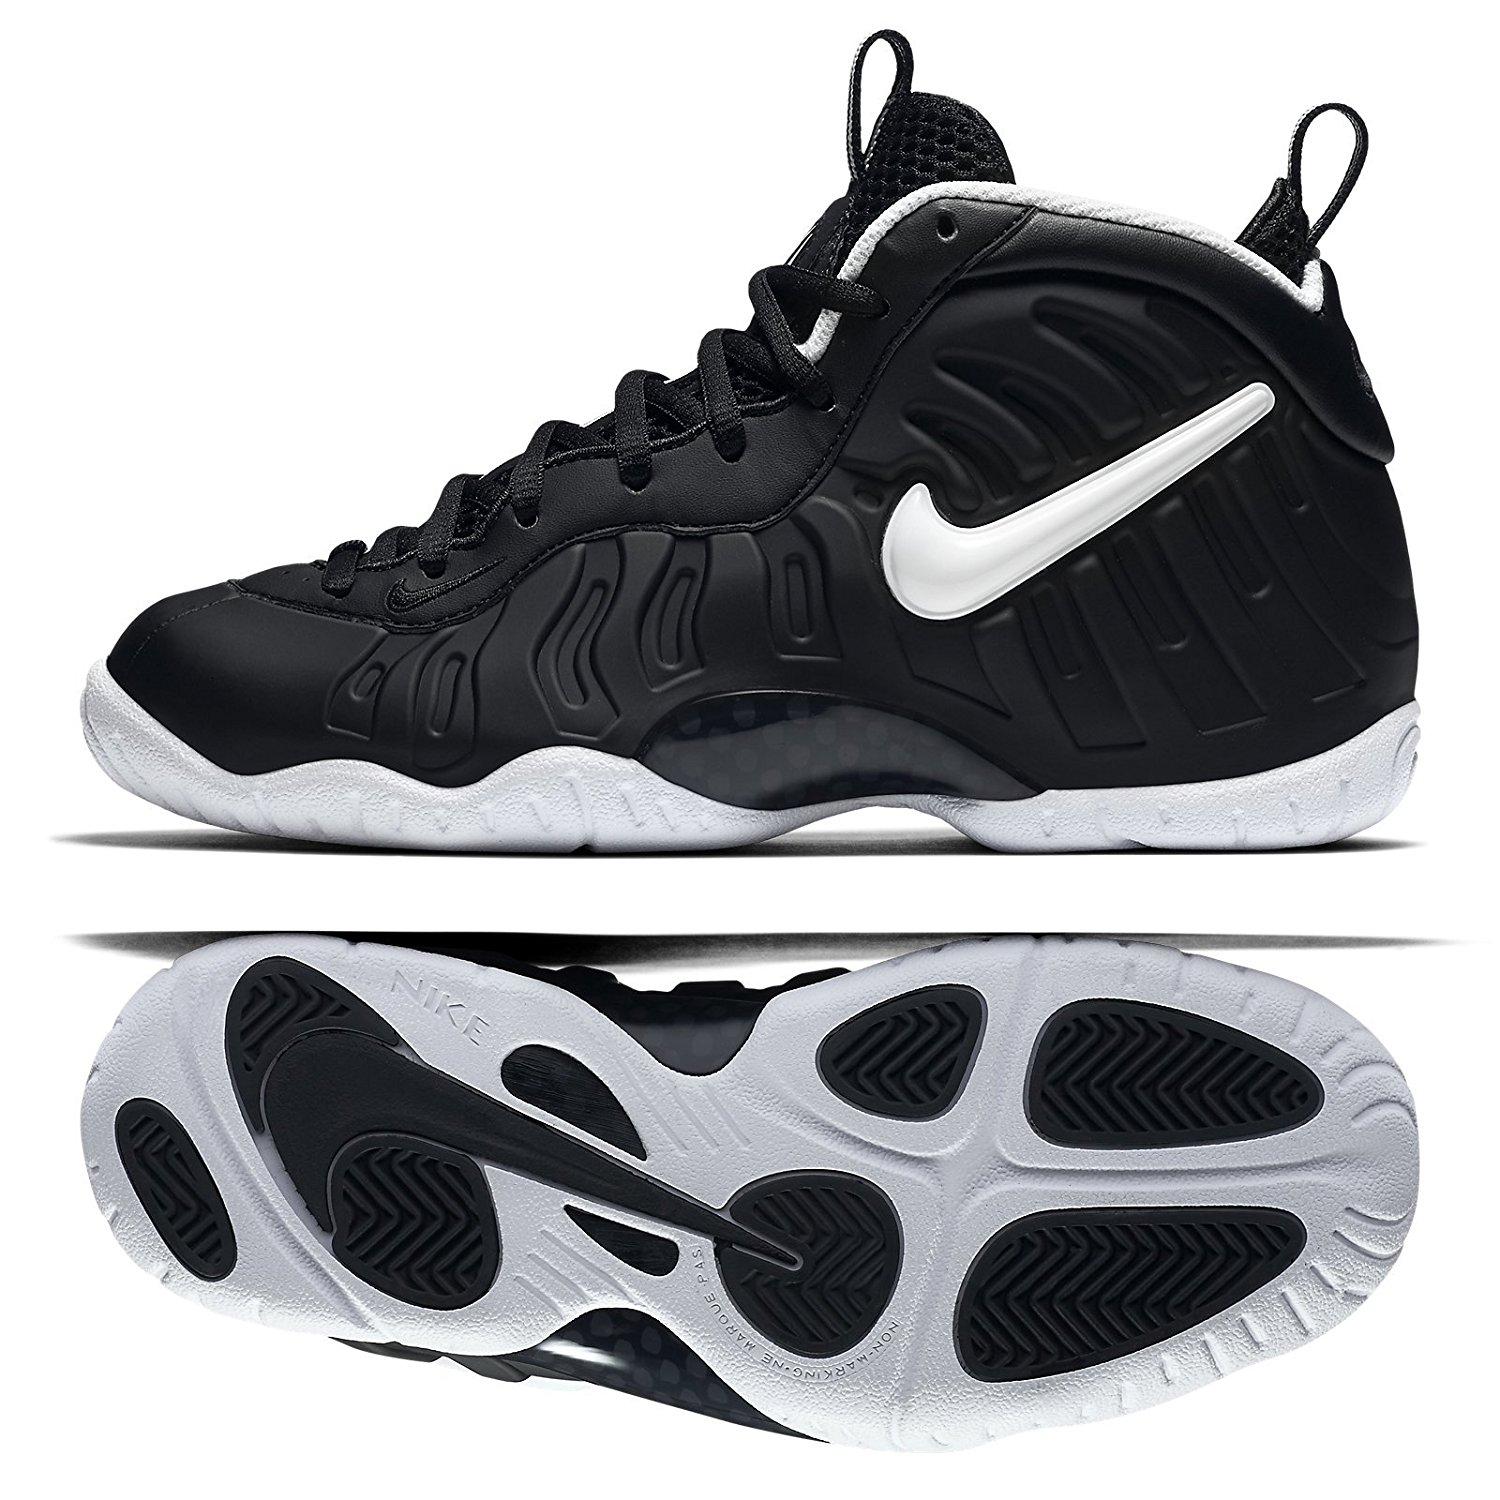 e24ce4ab5c4 Get Quotations · Nike Little Posite Pro (GS) DR DOOM 644792-006 Black White  Big